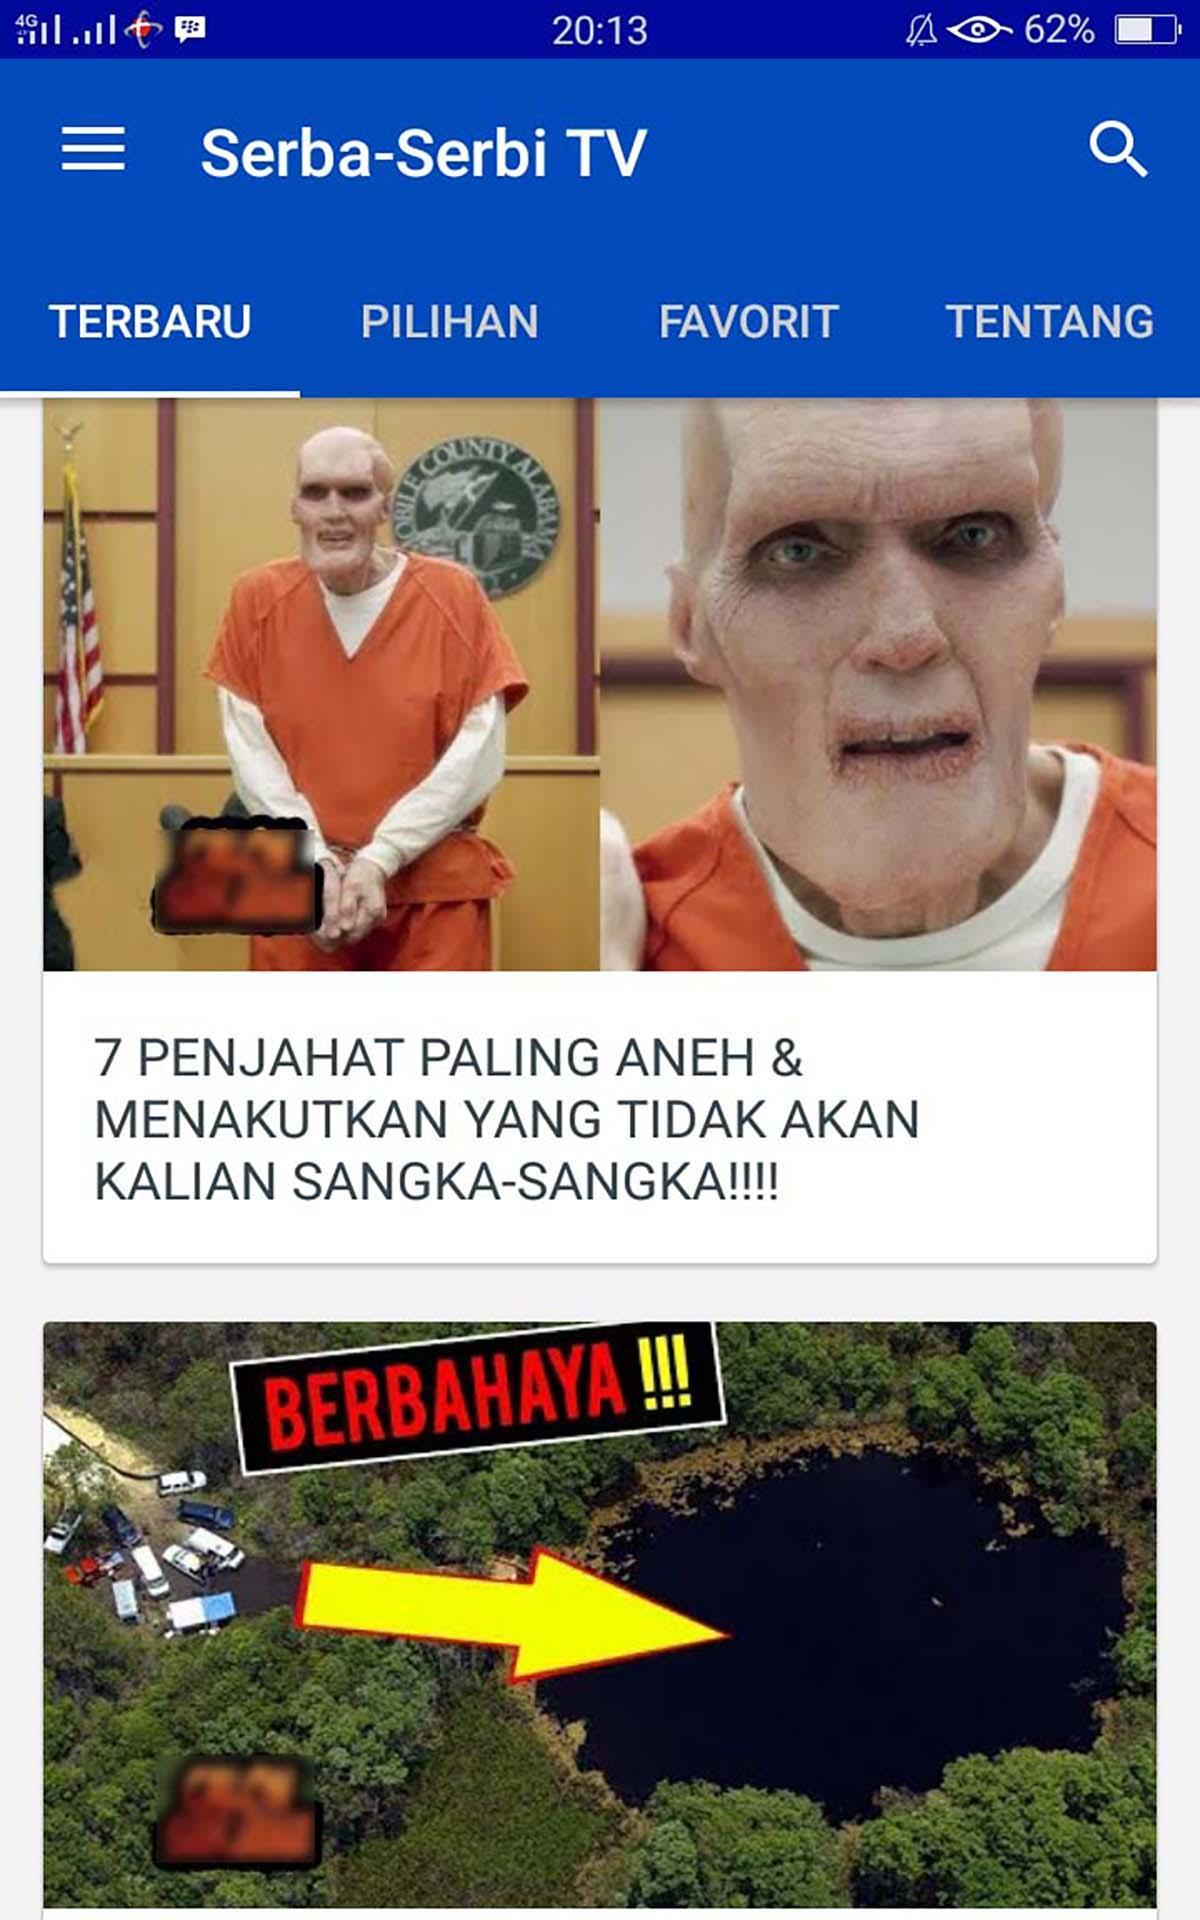 Super Gokil TV Unik Aneh Lucu Kontroversial For Android